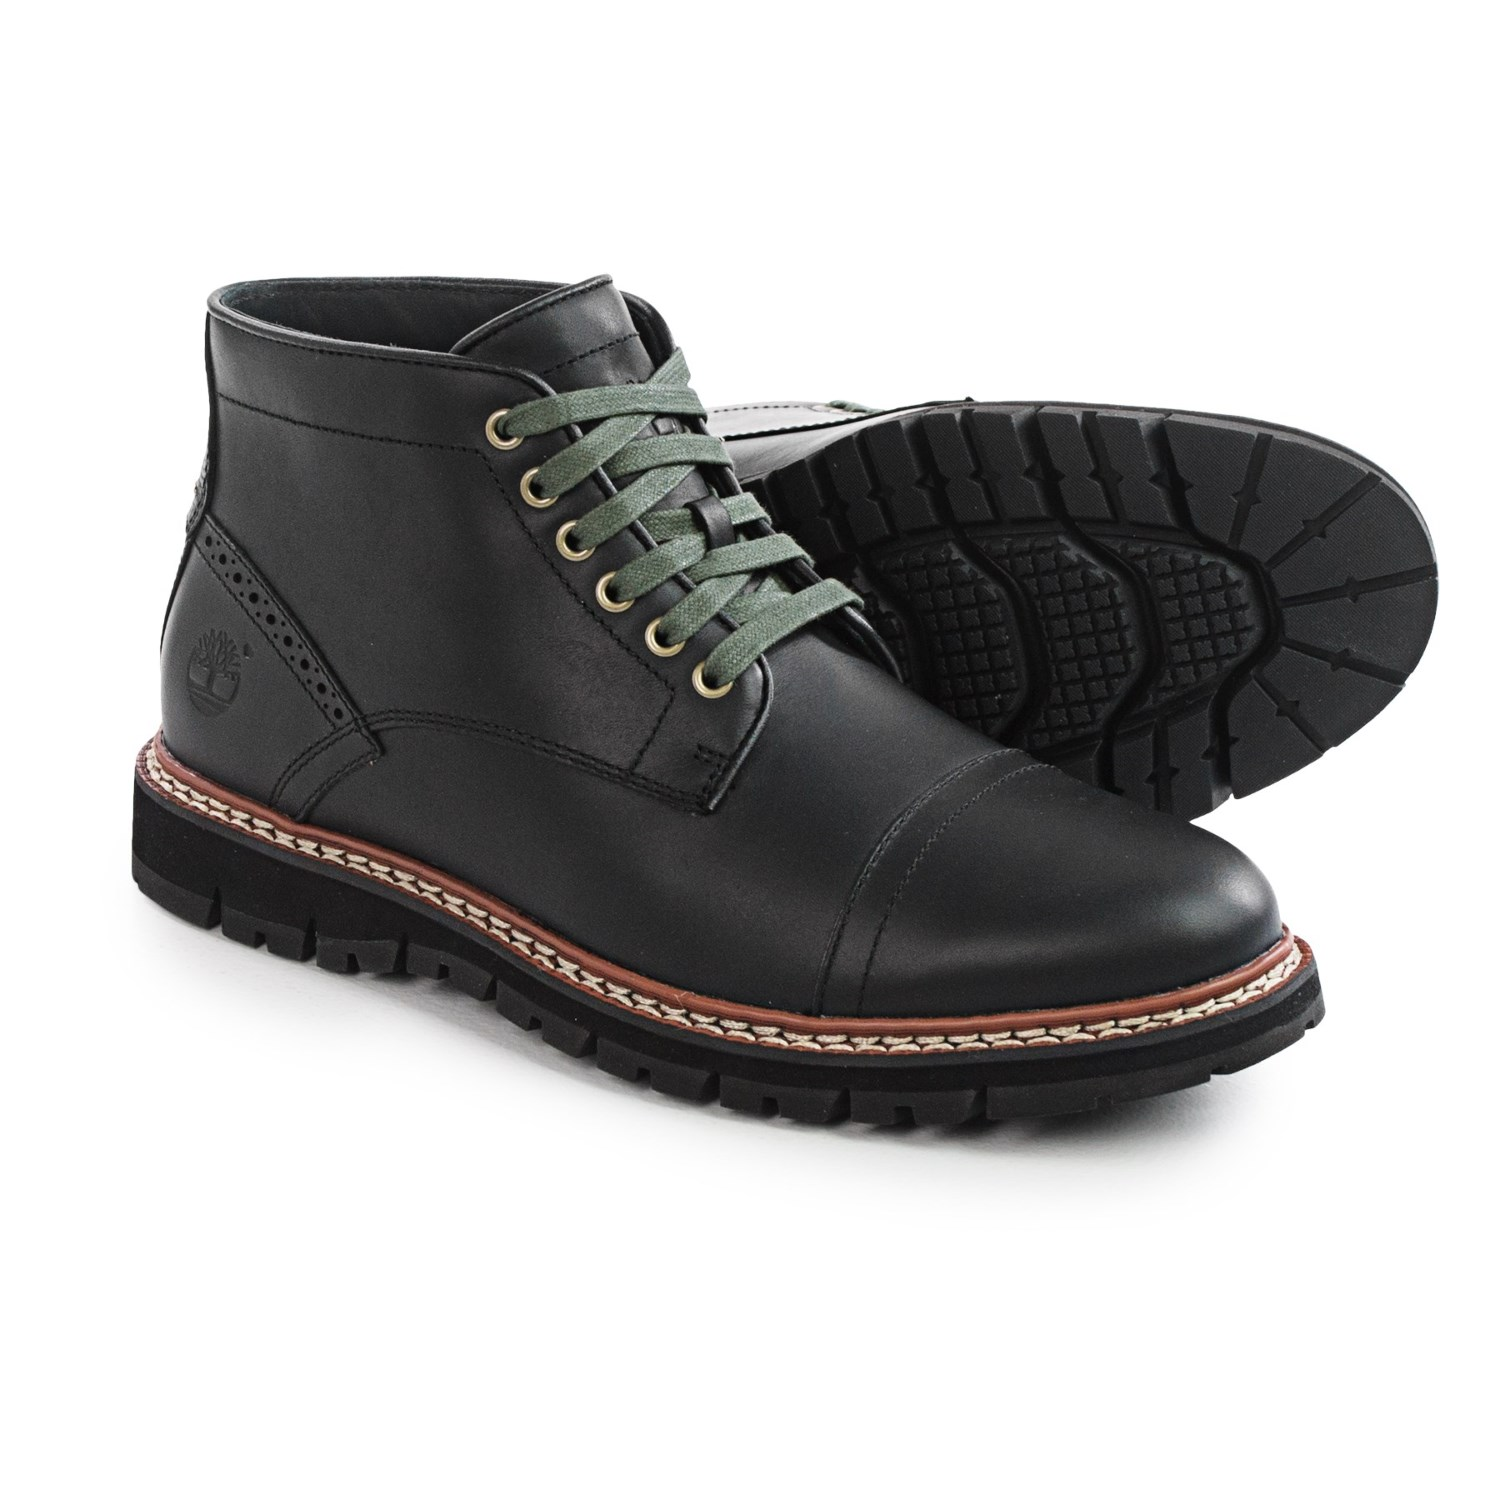 timberland britton hill chukka boots for men 109yh. Black Bedroom Furniture Sets. Home Design Ideas